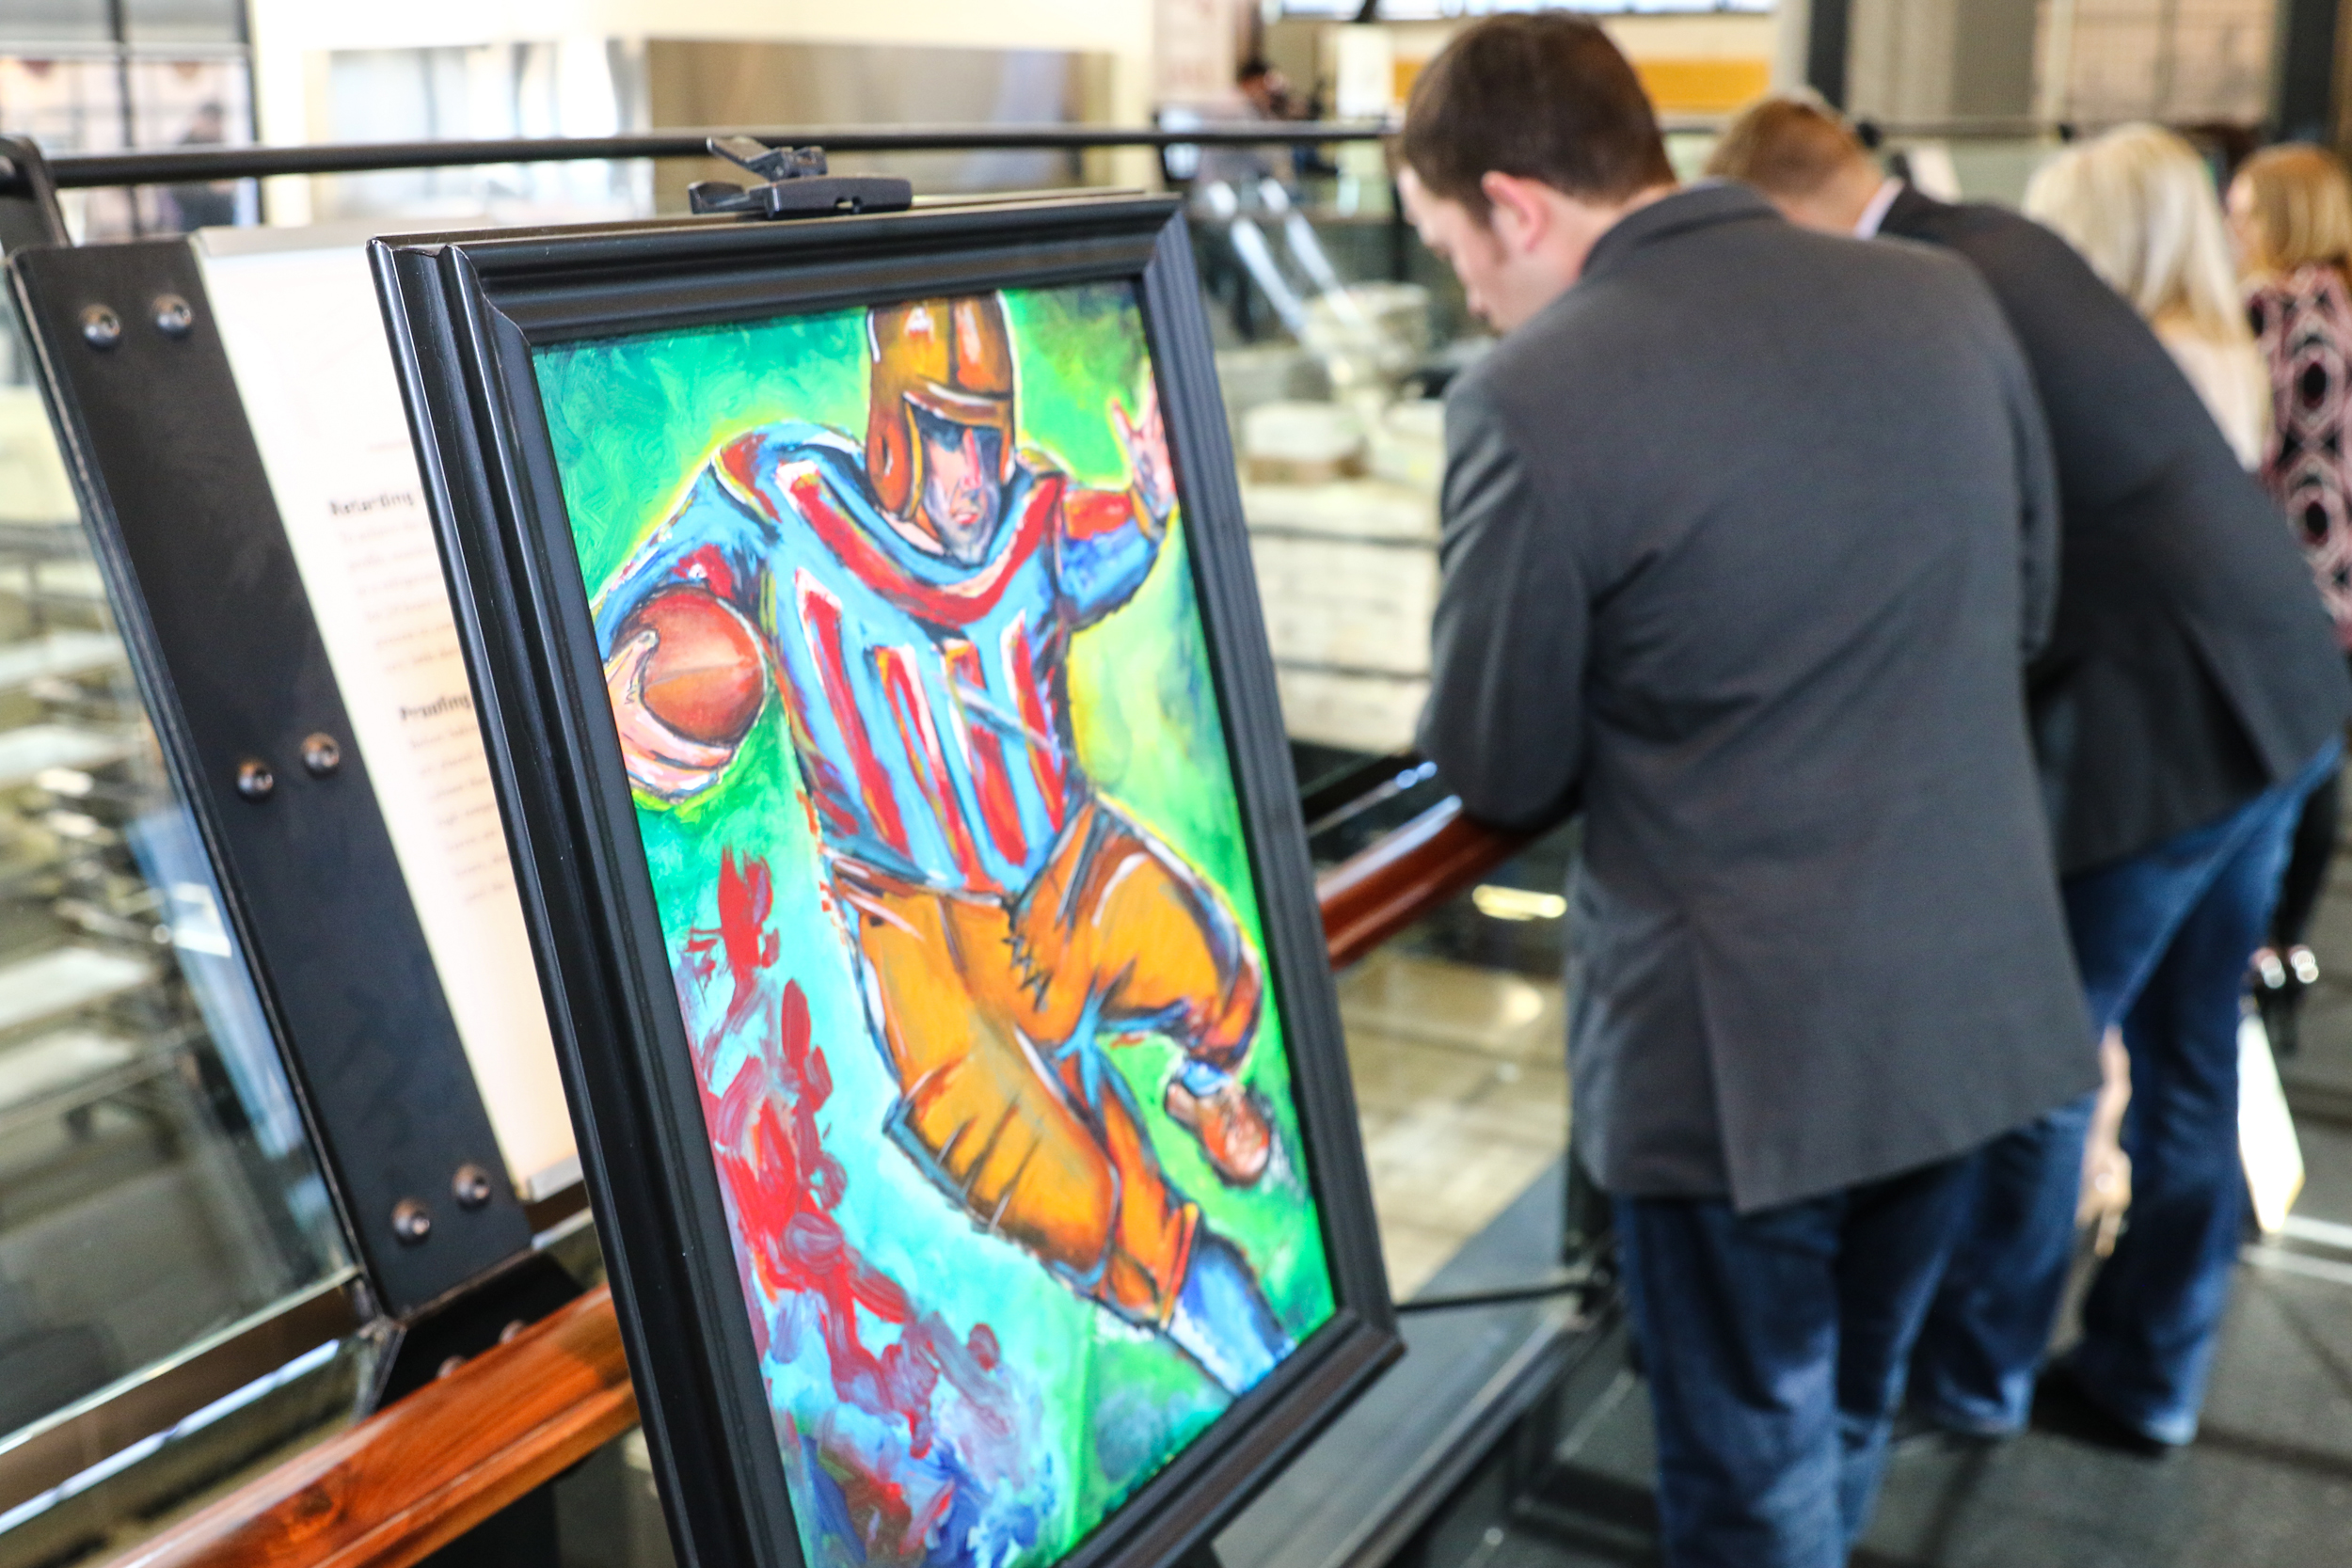 People check out artwork at the 2016 Smocks and Jocks event.